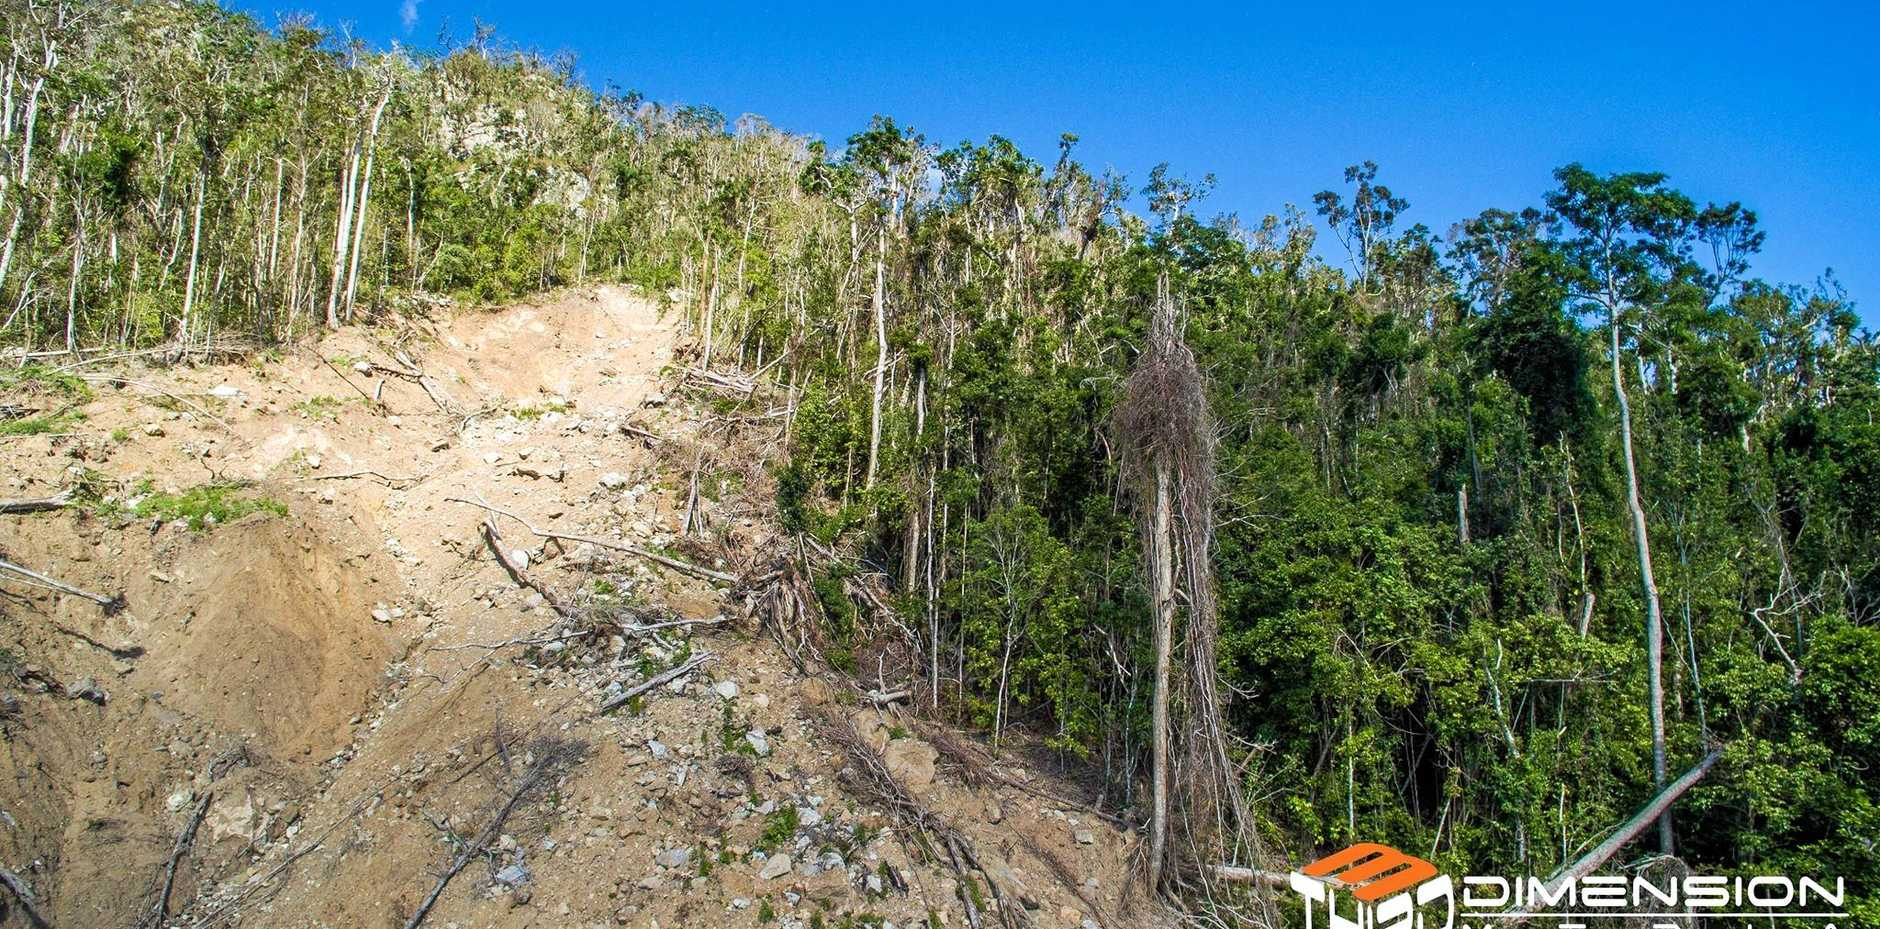 Queensland Parks and Wildlife say the chance of future landslips above Cannonvale are 'very low'. Photo: Th3rd Dimension Media